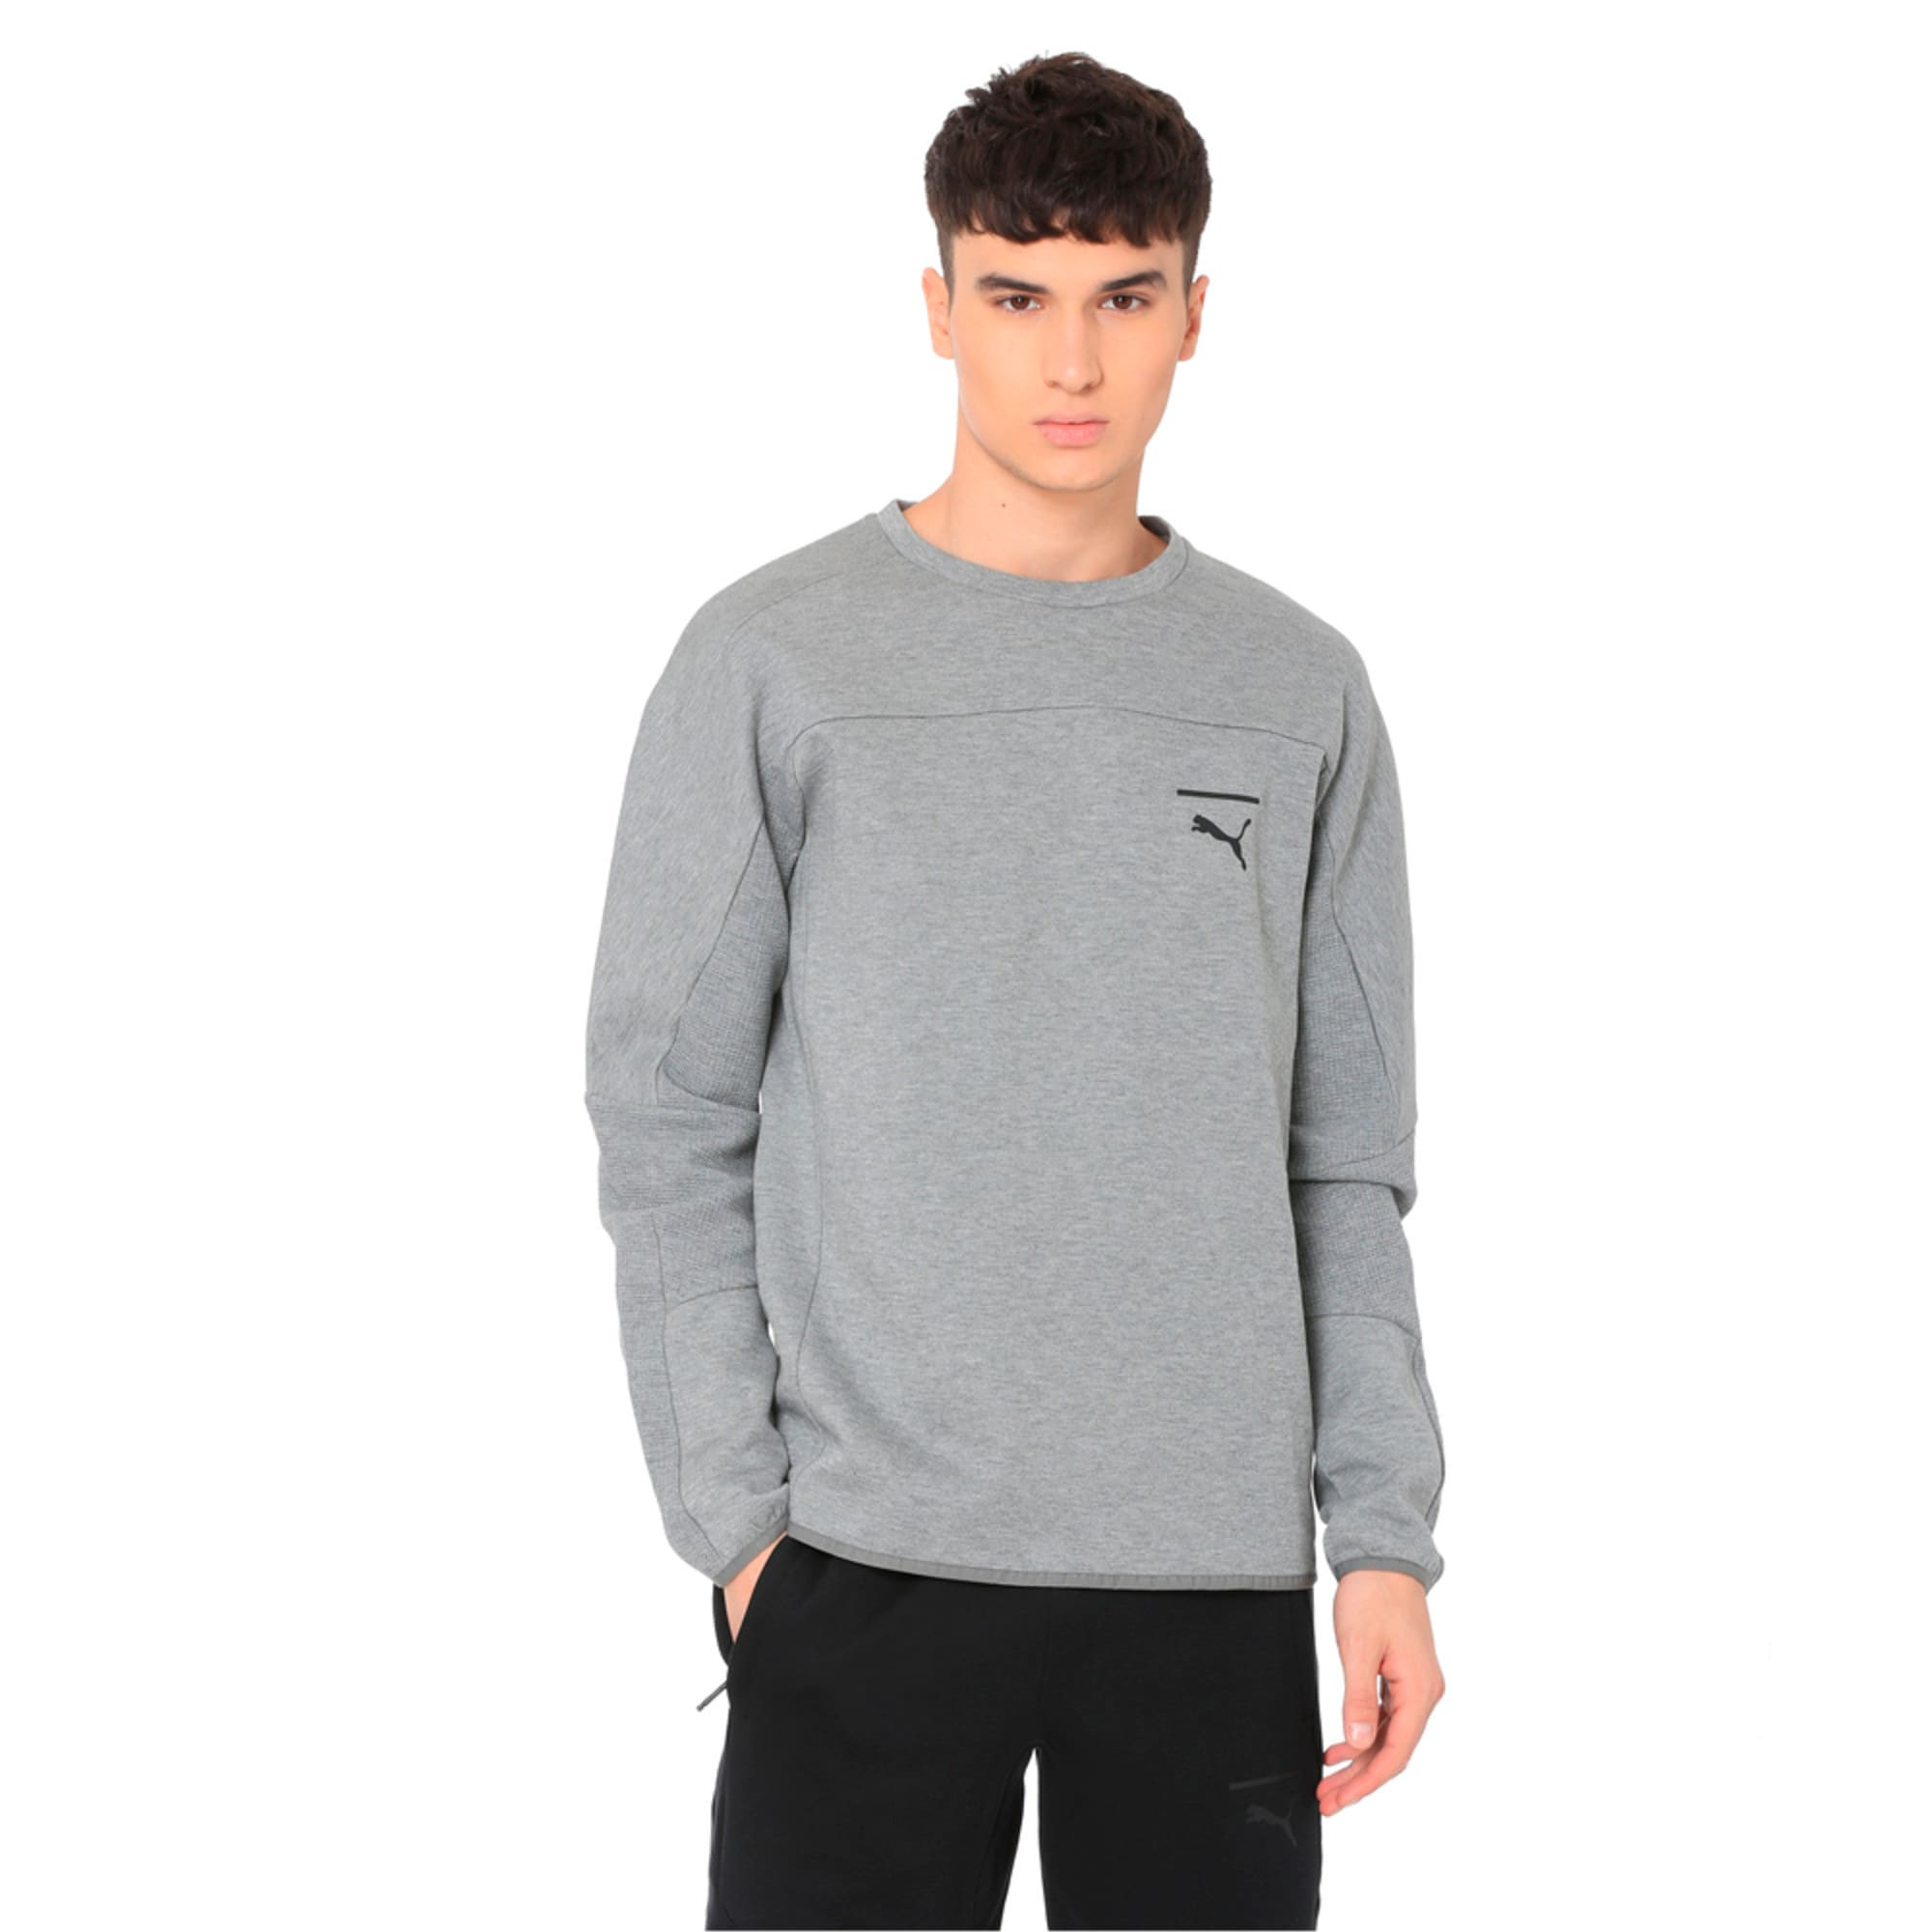 Thumbnail 1 of Pace Crew Neck Men's Sweatshirt, Medium Gray Heather, medium-IND